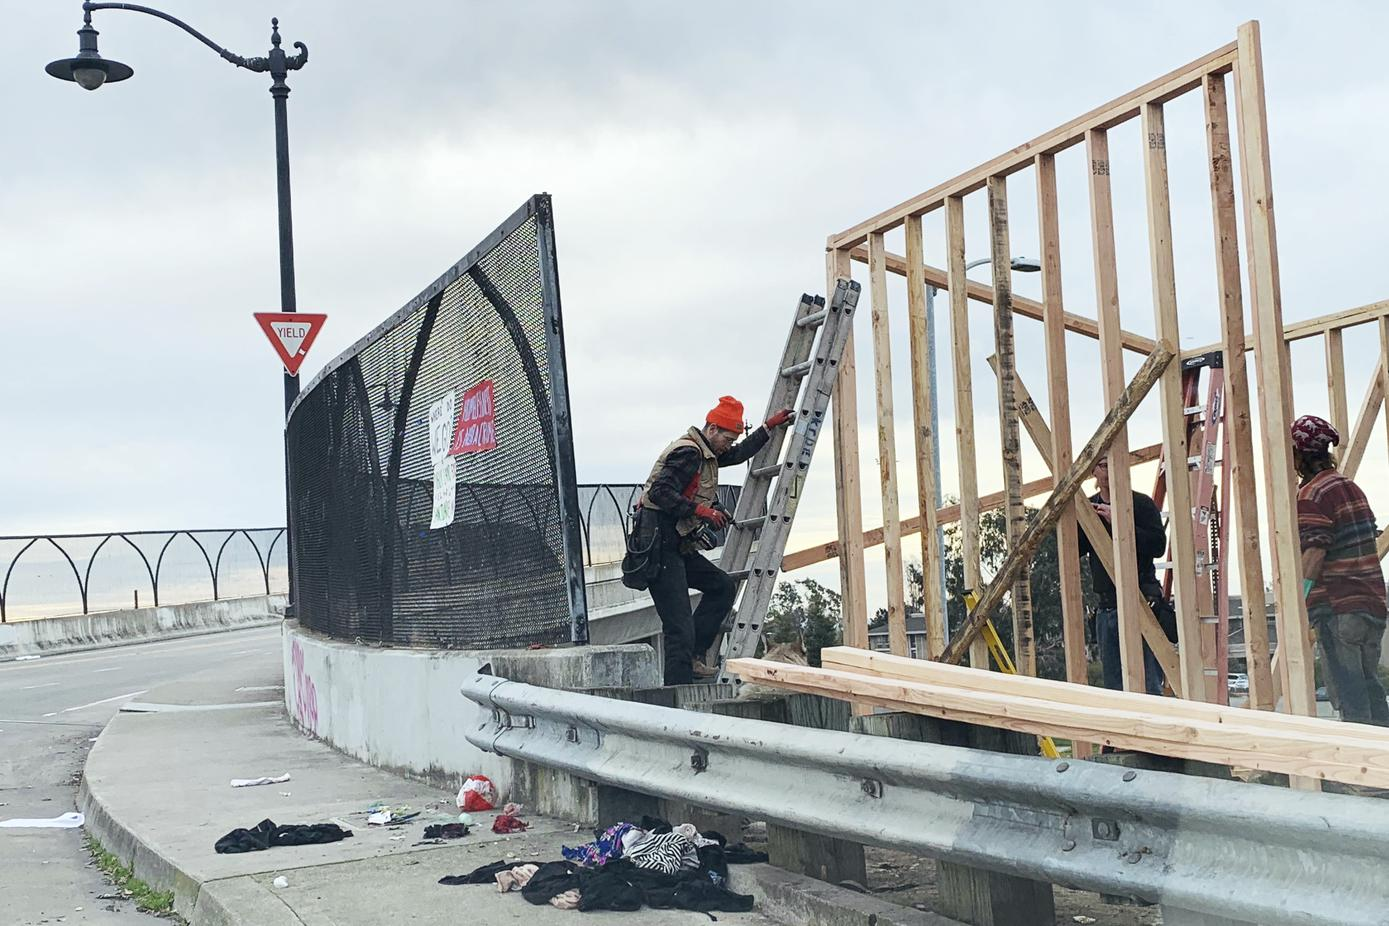 Volunteers build unapproved tiny home development in Oakland median